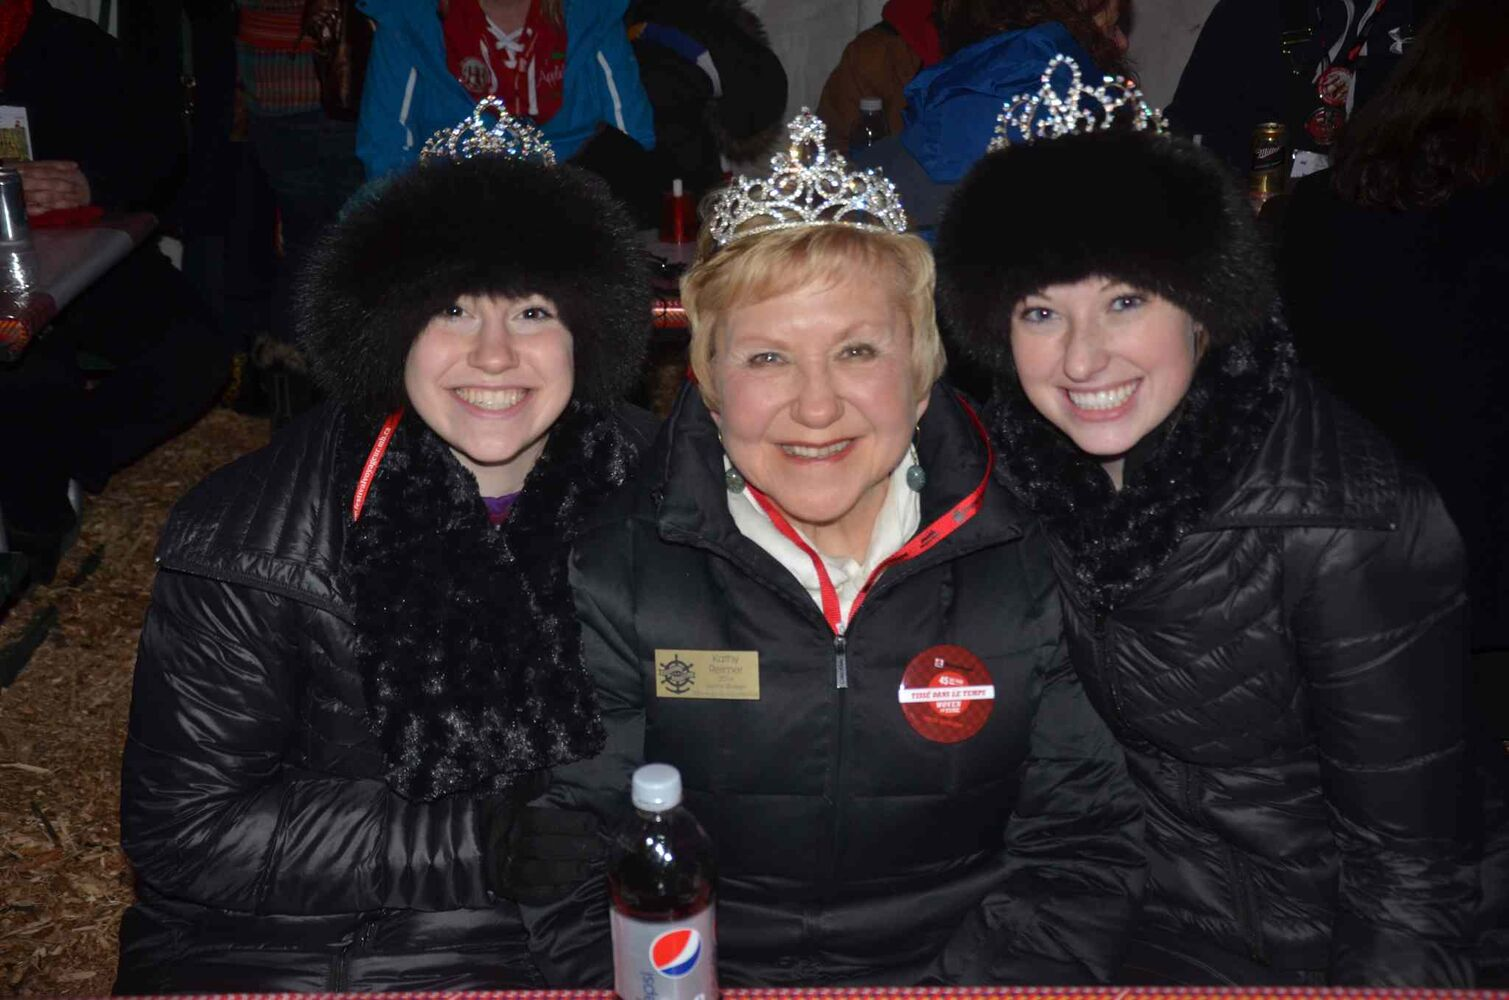 Senior Snow Queen Kathy Reimer and two Snow Princesses from Minneapolis